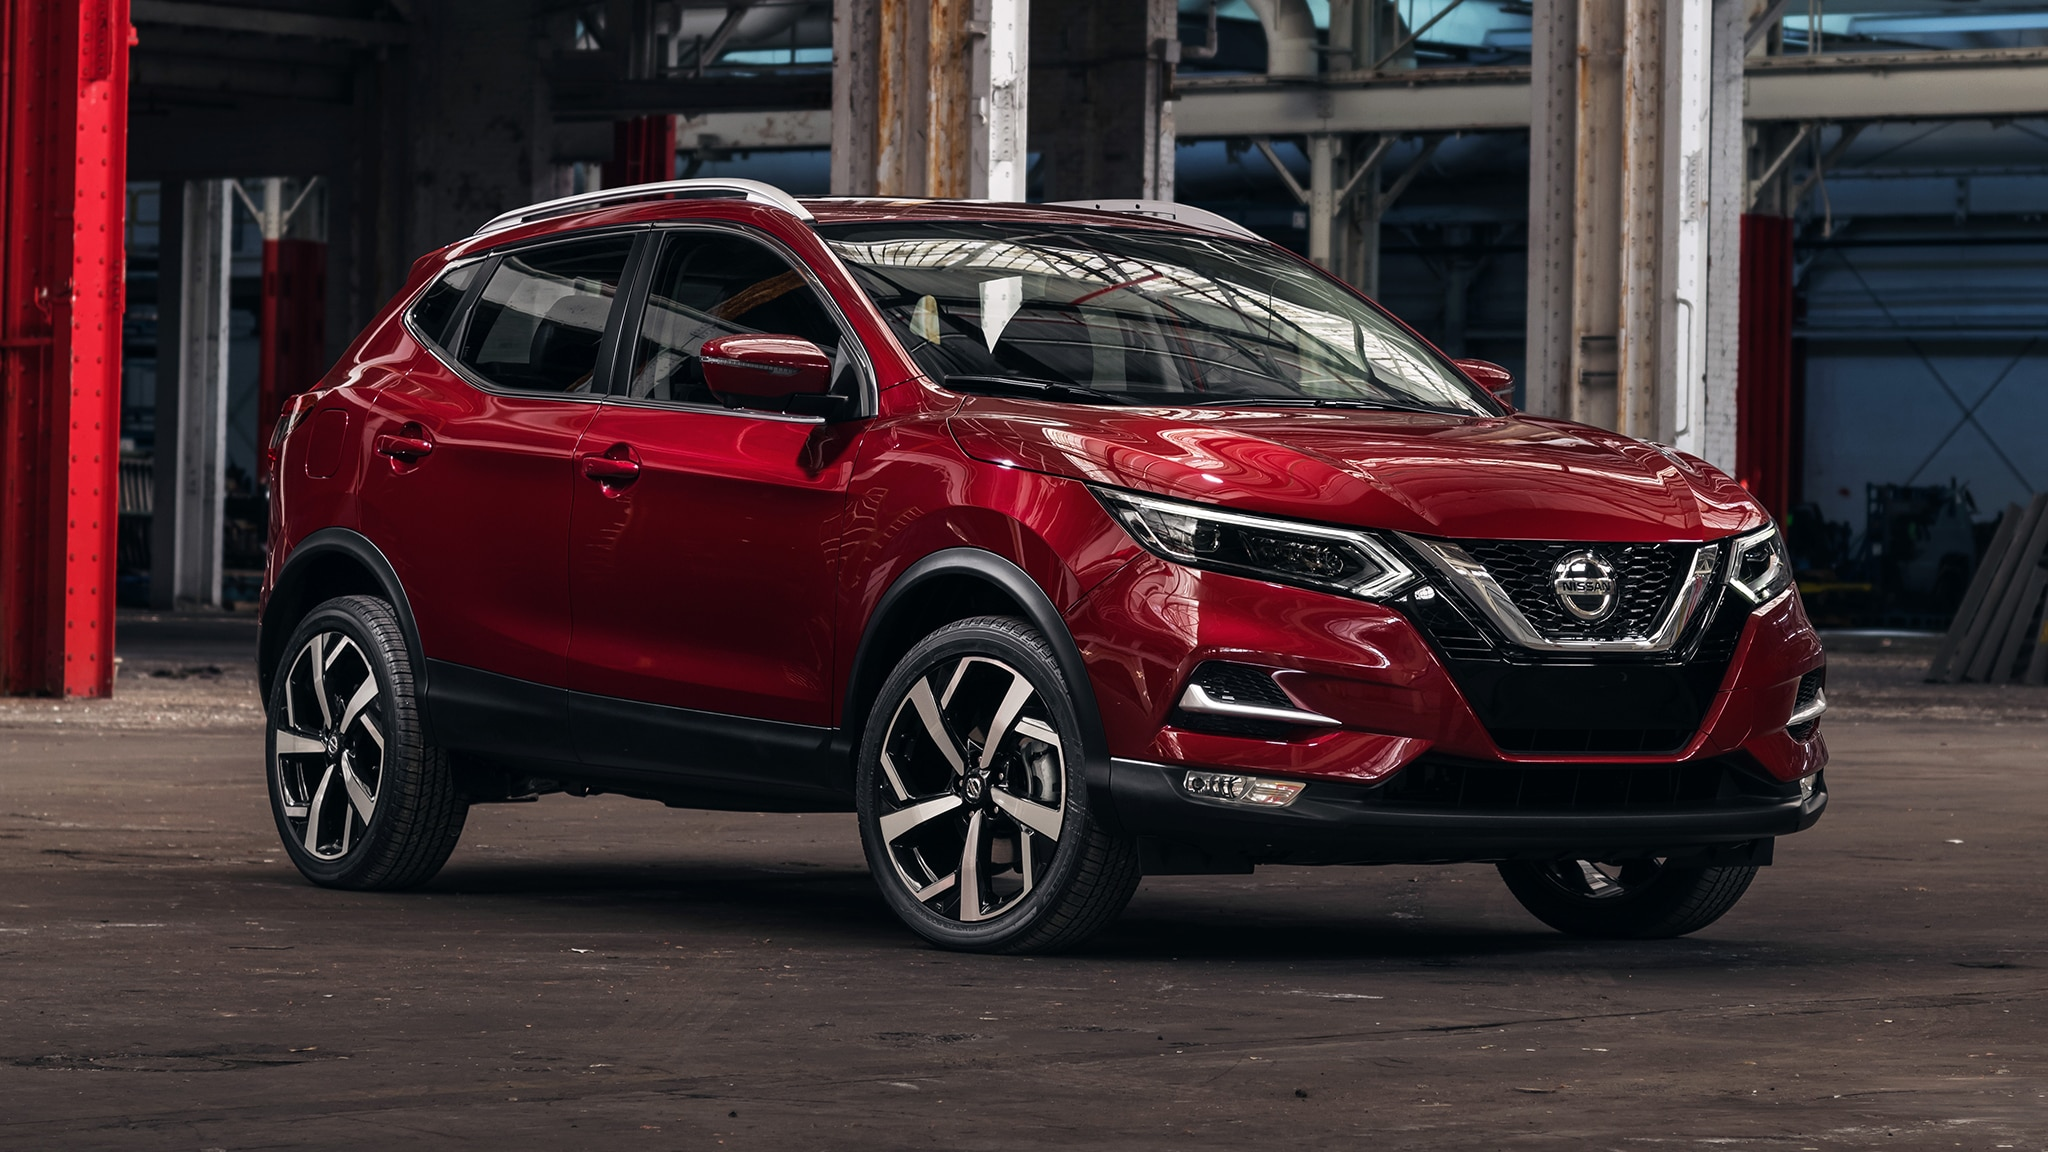 2020 Nissan Rogue Sport Photos and Info: The Small SUV ...